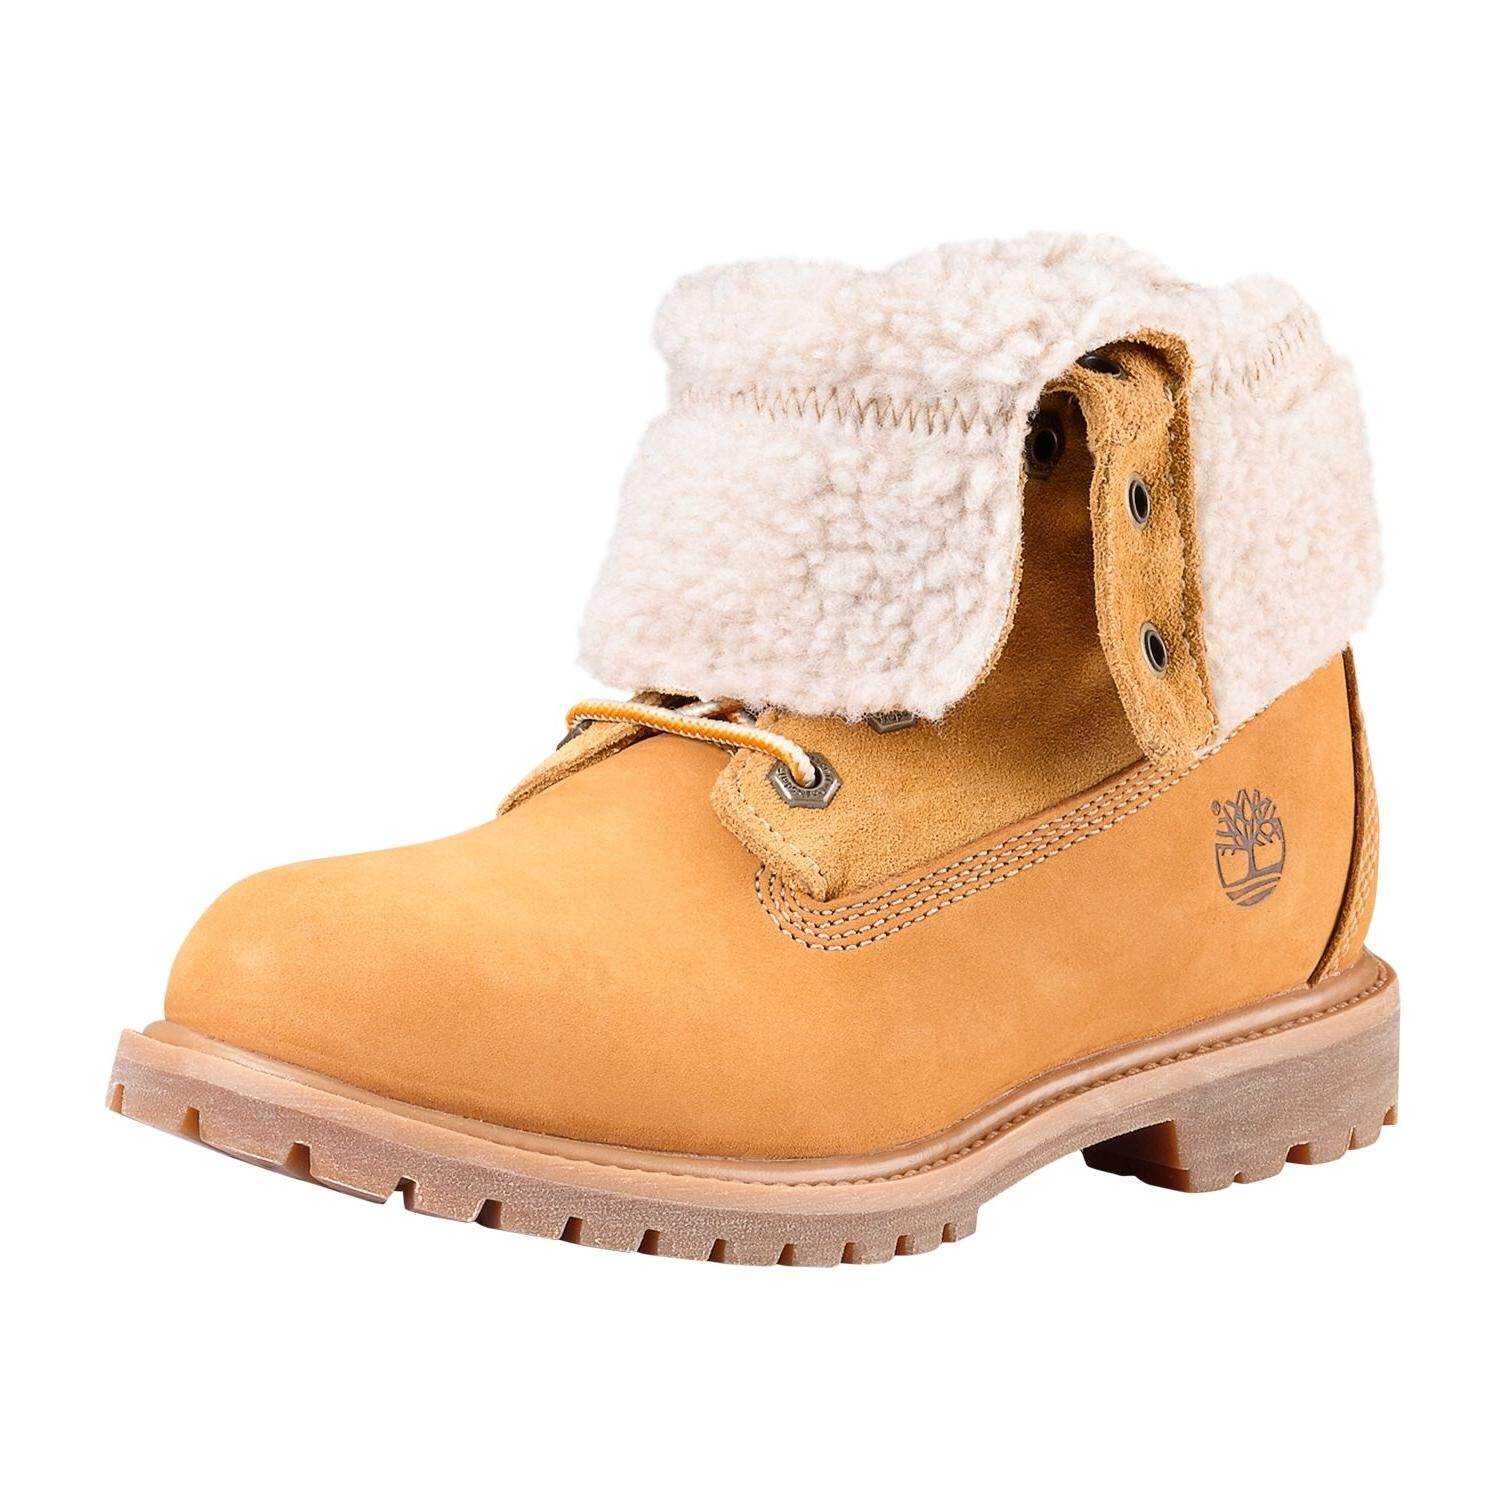 Women's Timberland Boot Authentics Teddy Fleece Fold-Down Wa